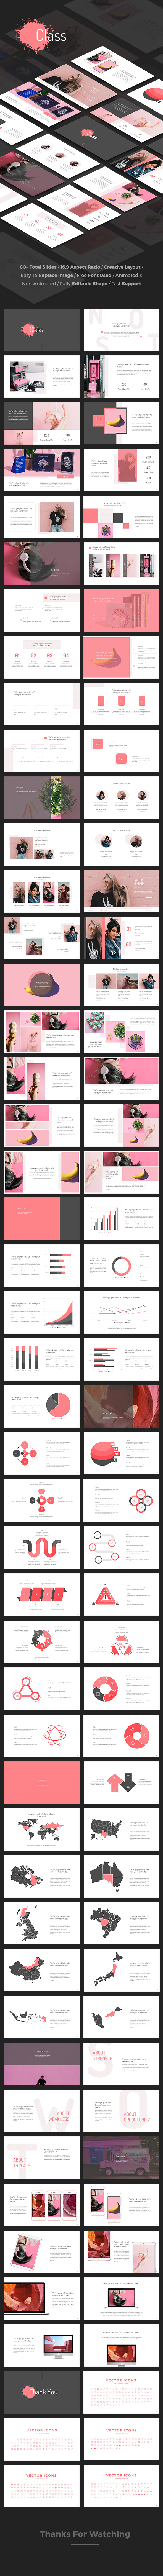 Class - Creative Google Slides Template - Google Slides Presentation Templates